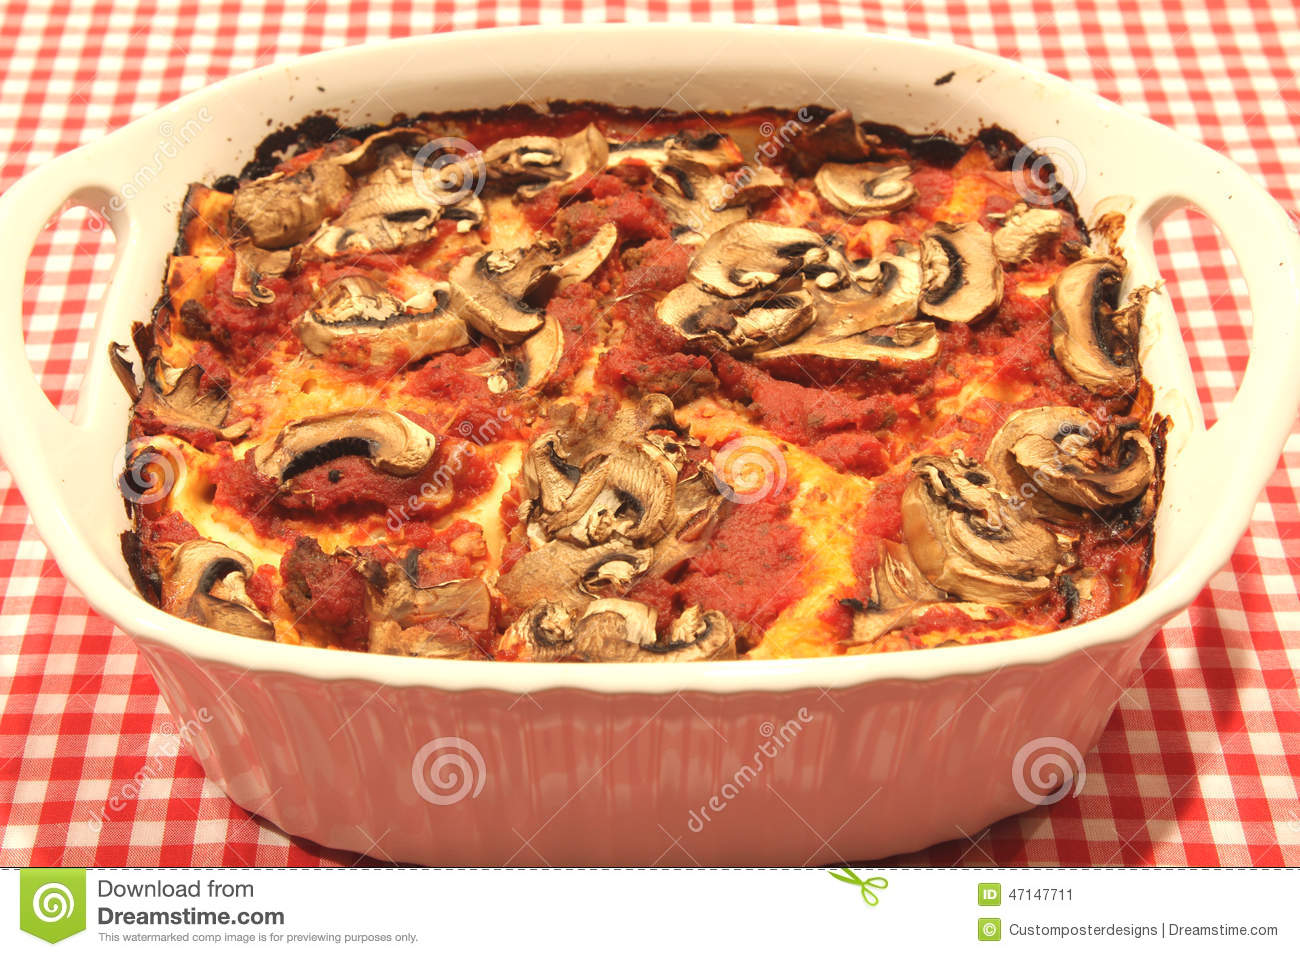 Download A Lasagna Casserole With Mushrooms. Stock Image - Image of casserole, ready: 47147711